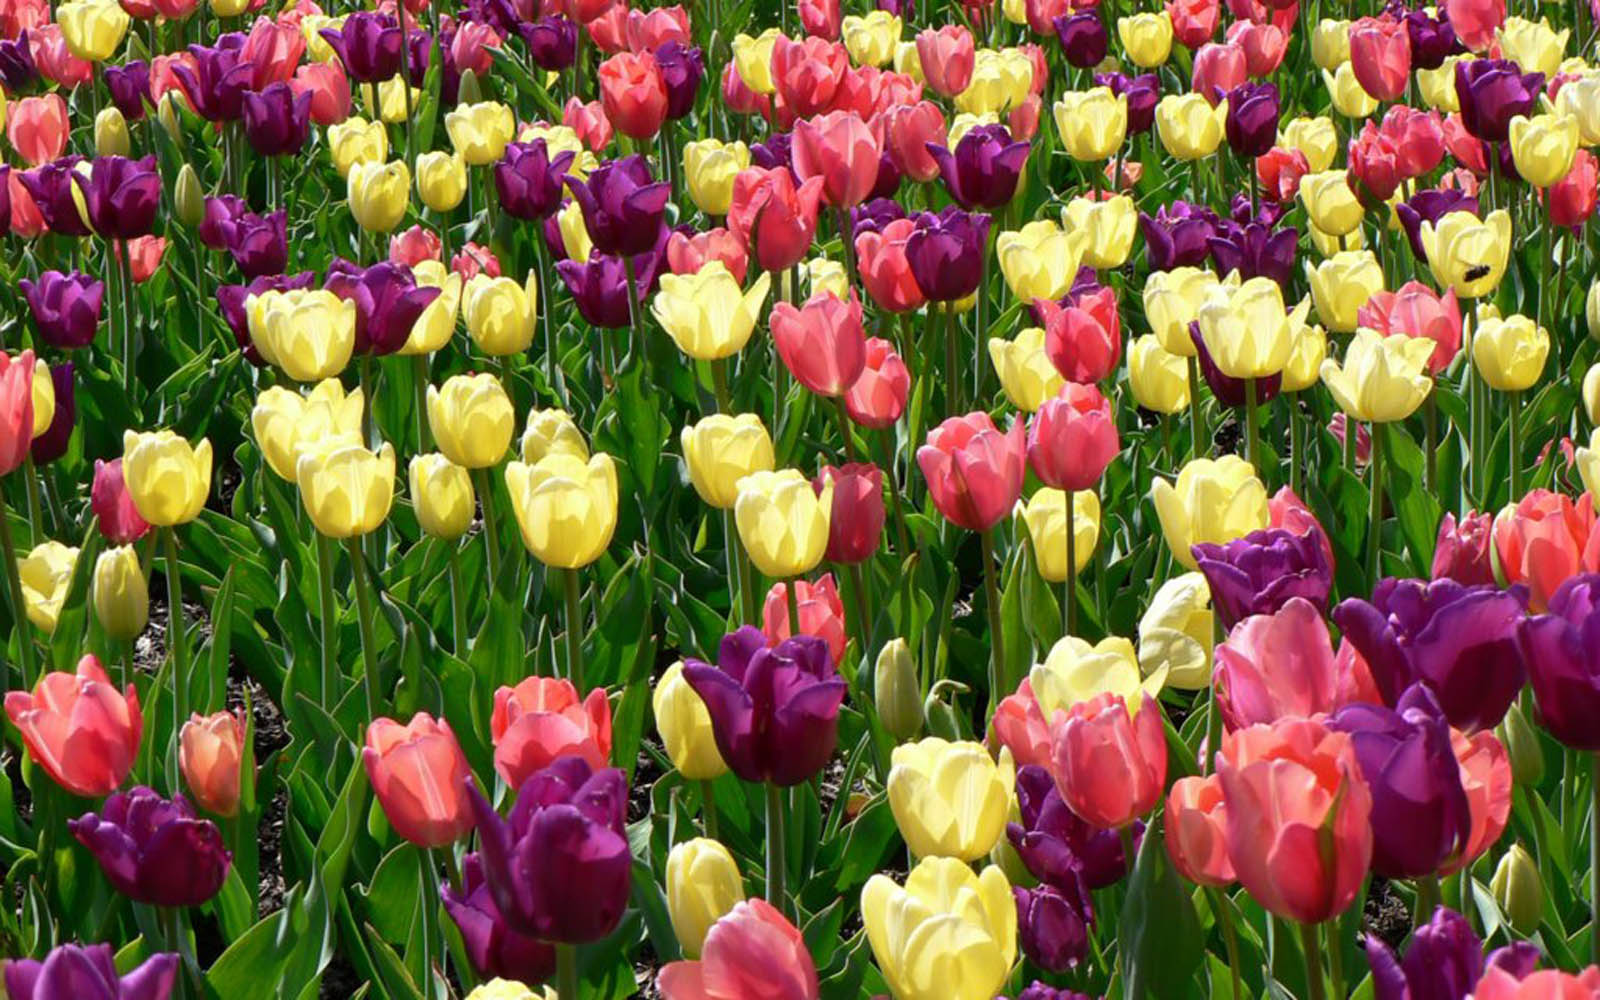 wallpapers: Spring Flowers Wallpapers - photo#46